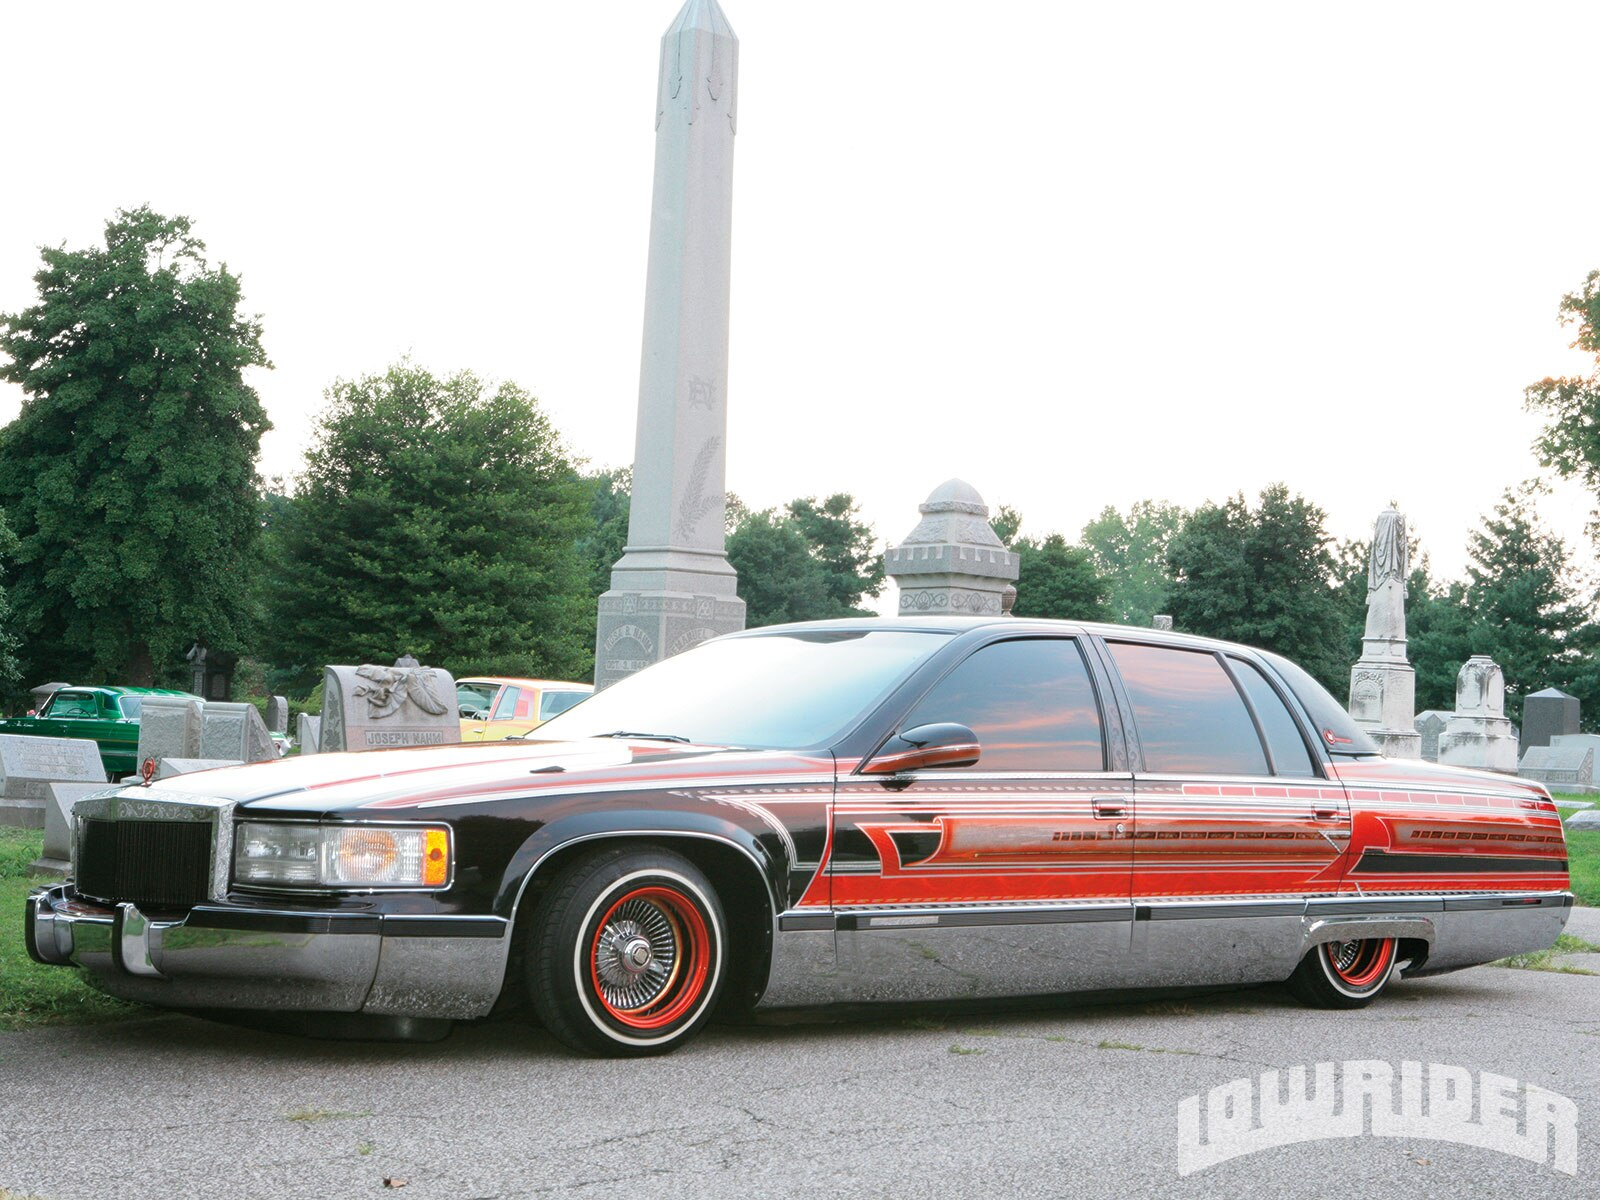 01-1995-cadillac-fleetwood-candy-orange-graphics2